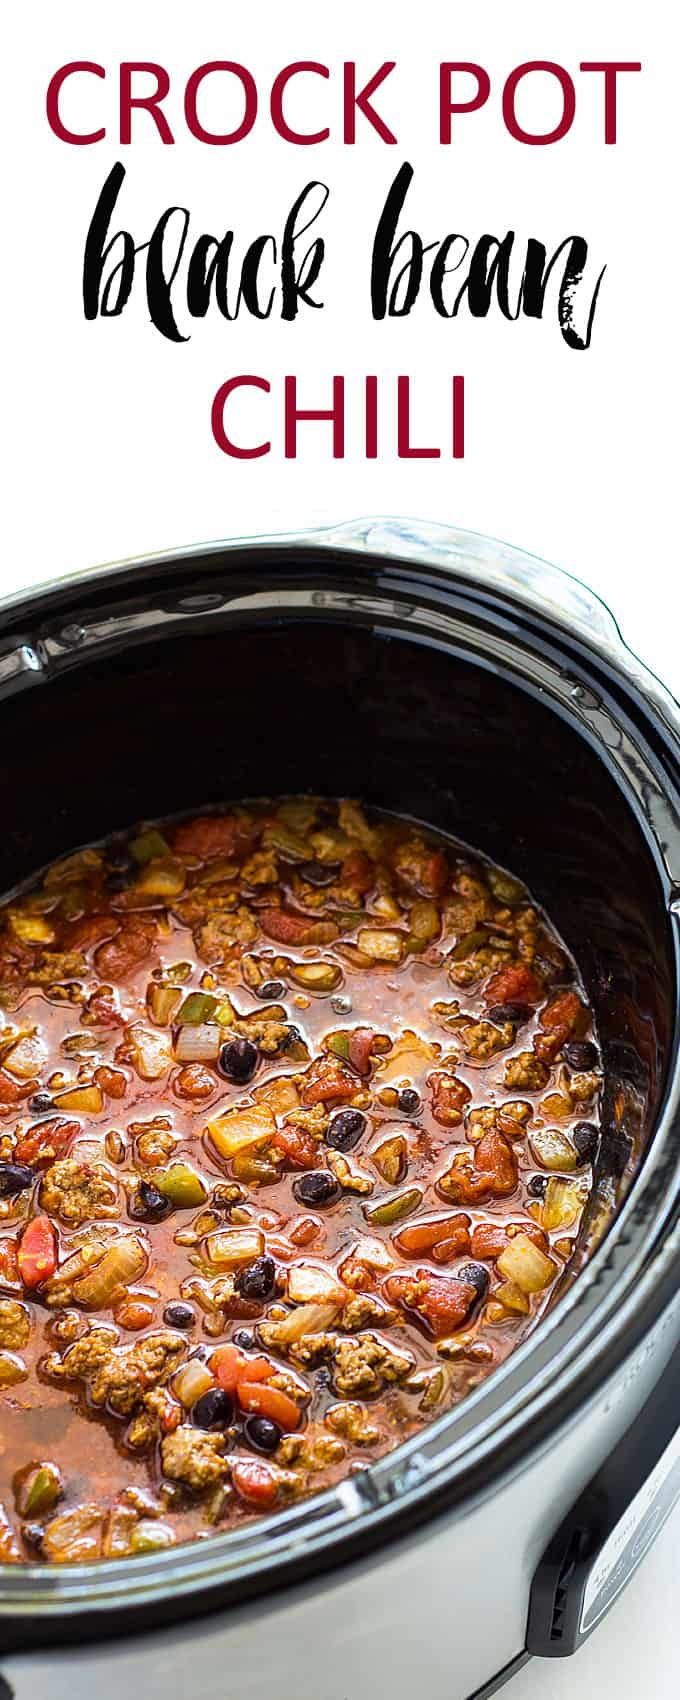 A closeup view of black bean chili with ground beef in an oval slow cooker.